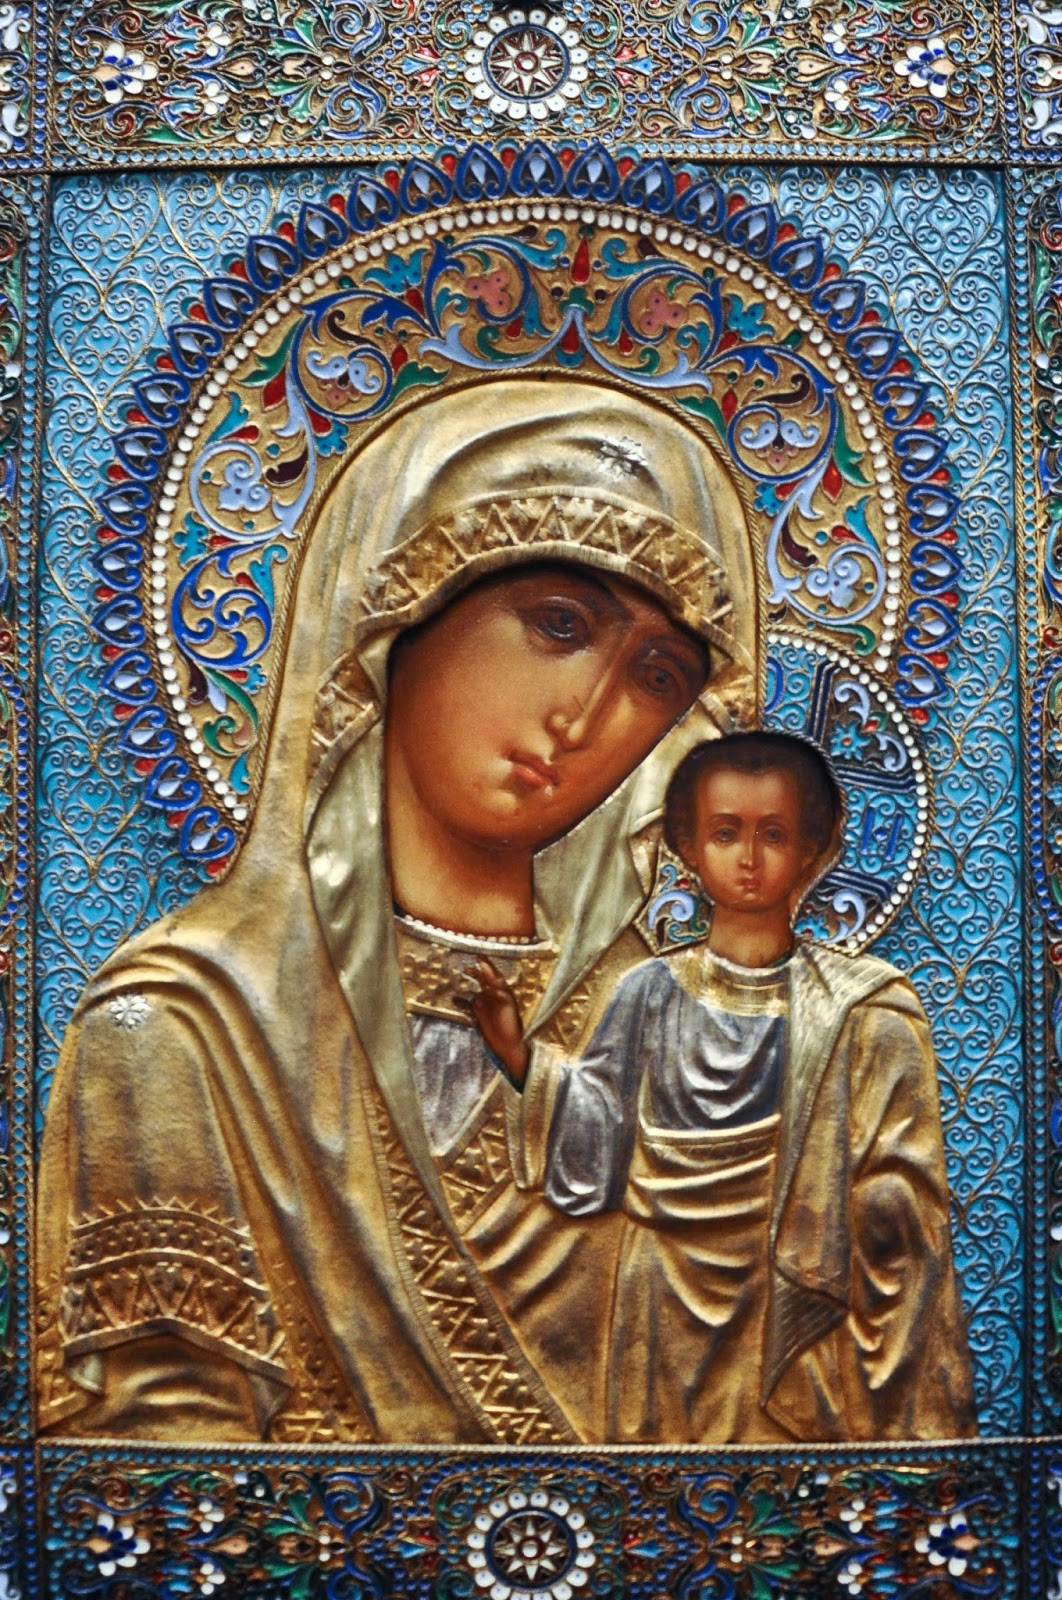 A Russian icon with an enamel covering, Gallerie d'Italia, Palazzo Leoni Montanari, Vicenza, Italia